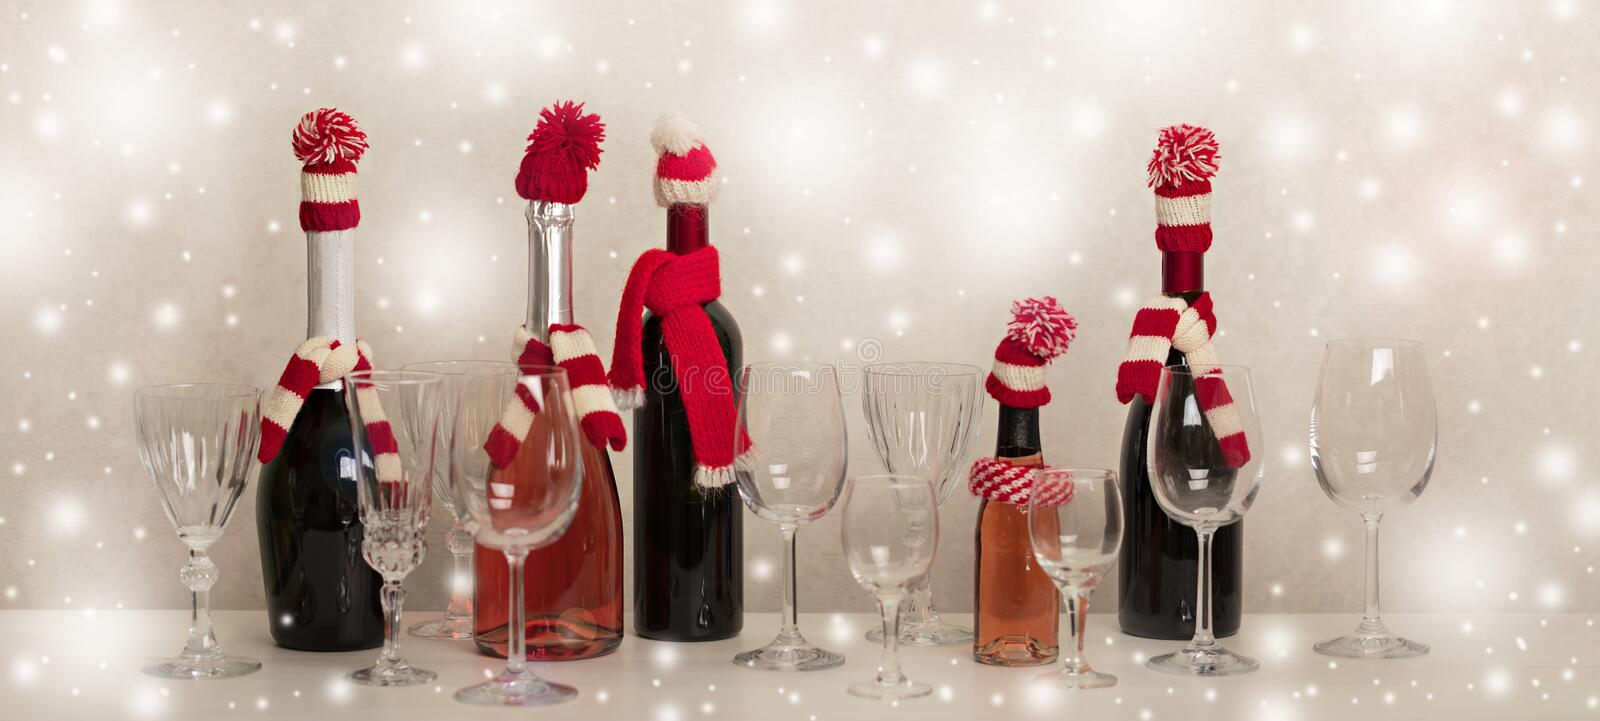 Merry Christmas and Happy New Year! Holiday knitted decor - Santa Claus knitted hats on the bottle with wine. Selective focus royalty free stock image